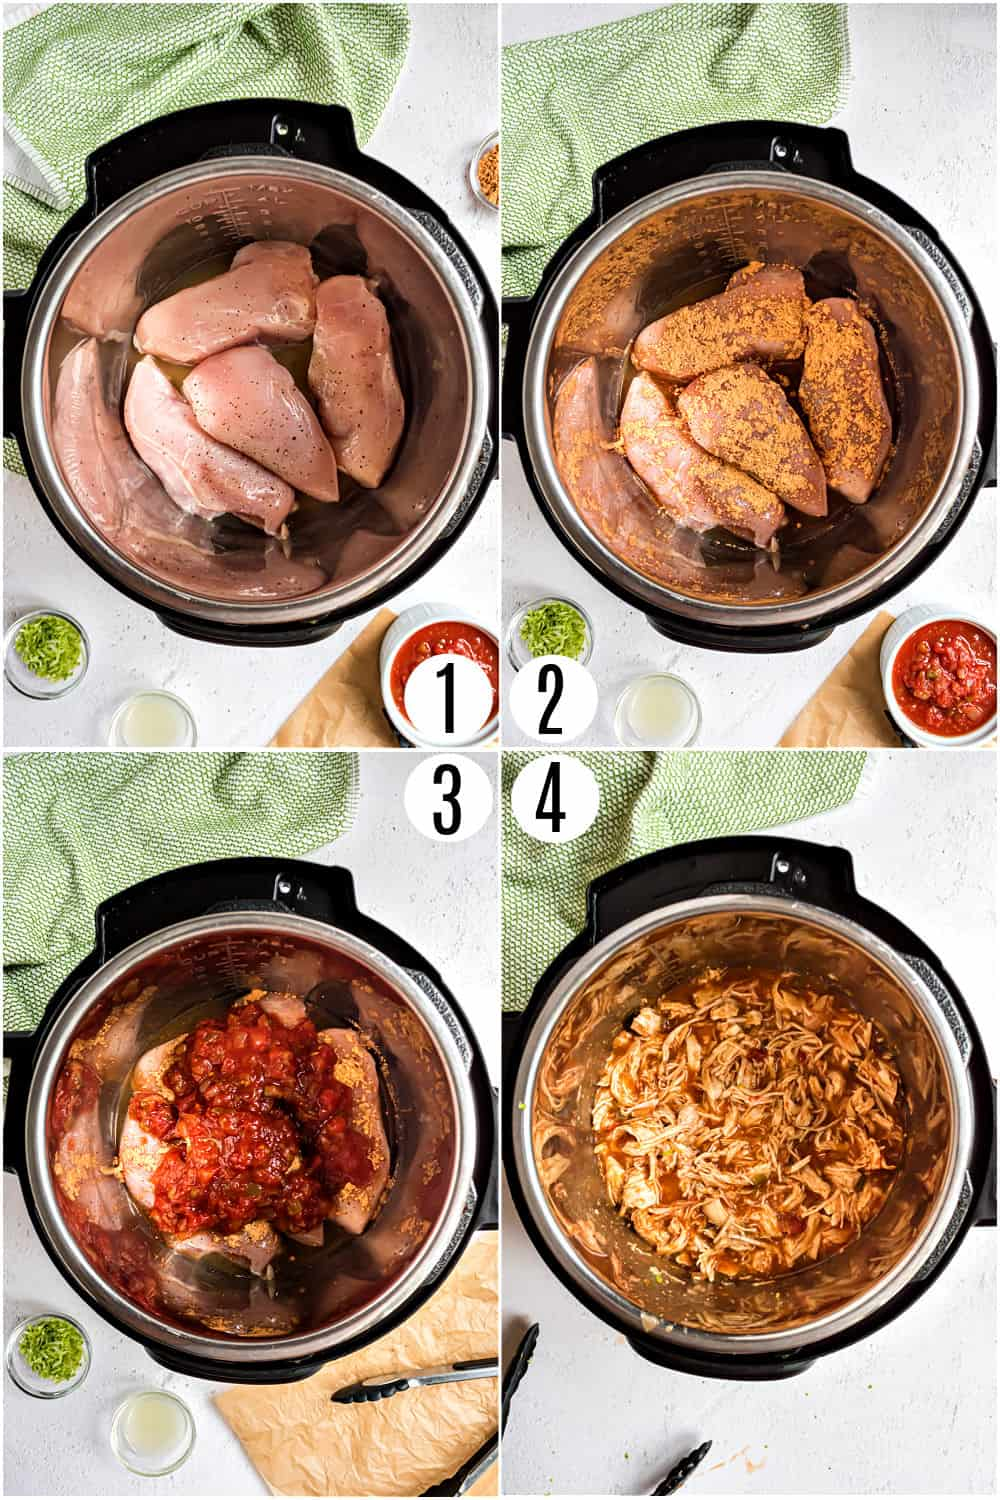 Step by step photos showing how to make Instant Pot Chicken tacos.